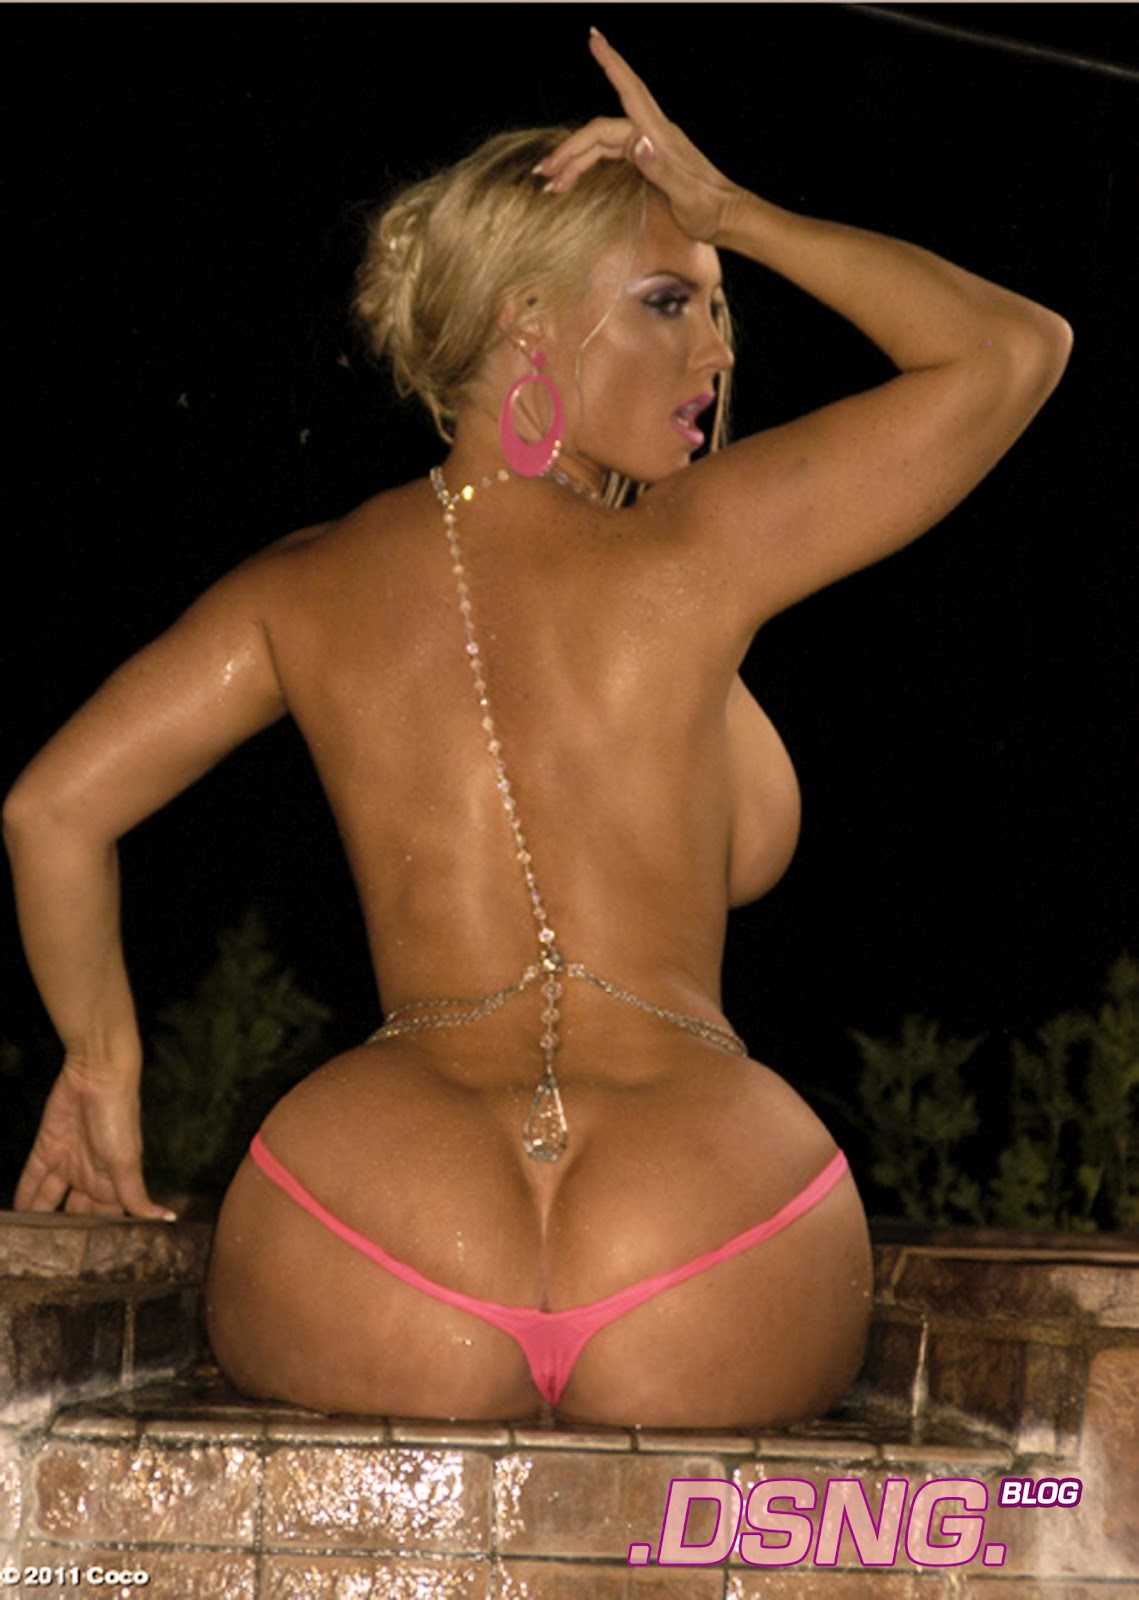 http://3.bp.blogspot.com/-j-vpJMWo3Ck/T5j-OMw3GtI/AAAAAAAAFKc/VX8wU1fxH9s/s1600/coco+austin+giant+ass+thick+fat+phat+pawg+ass+big+booty+whooty+bubble+butt+injection+nicki+minaj+fake+real+plastic+surgery+ass+parade.jpg